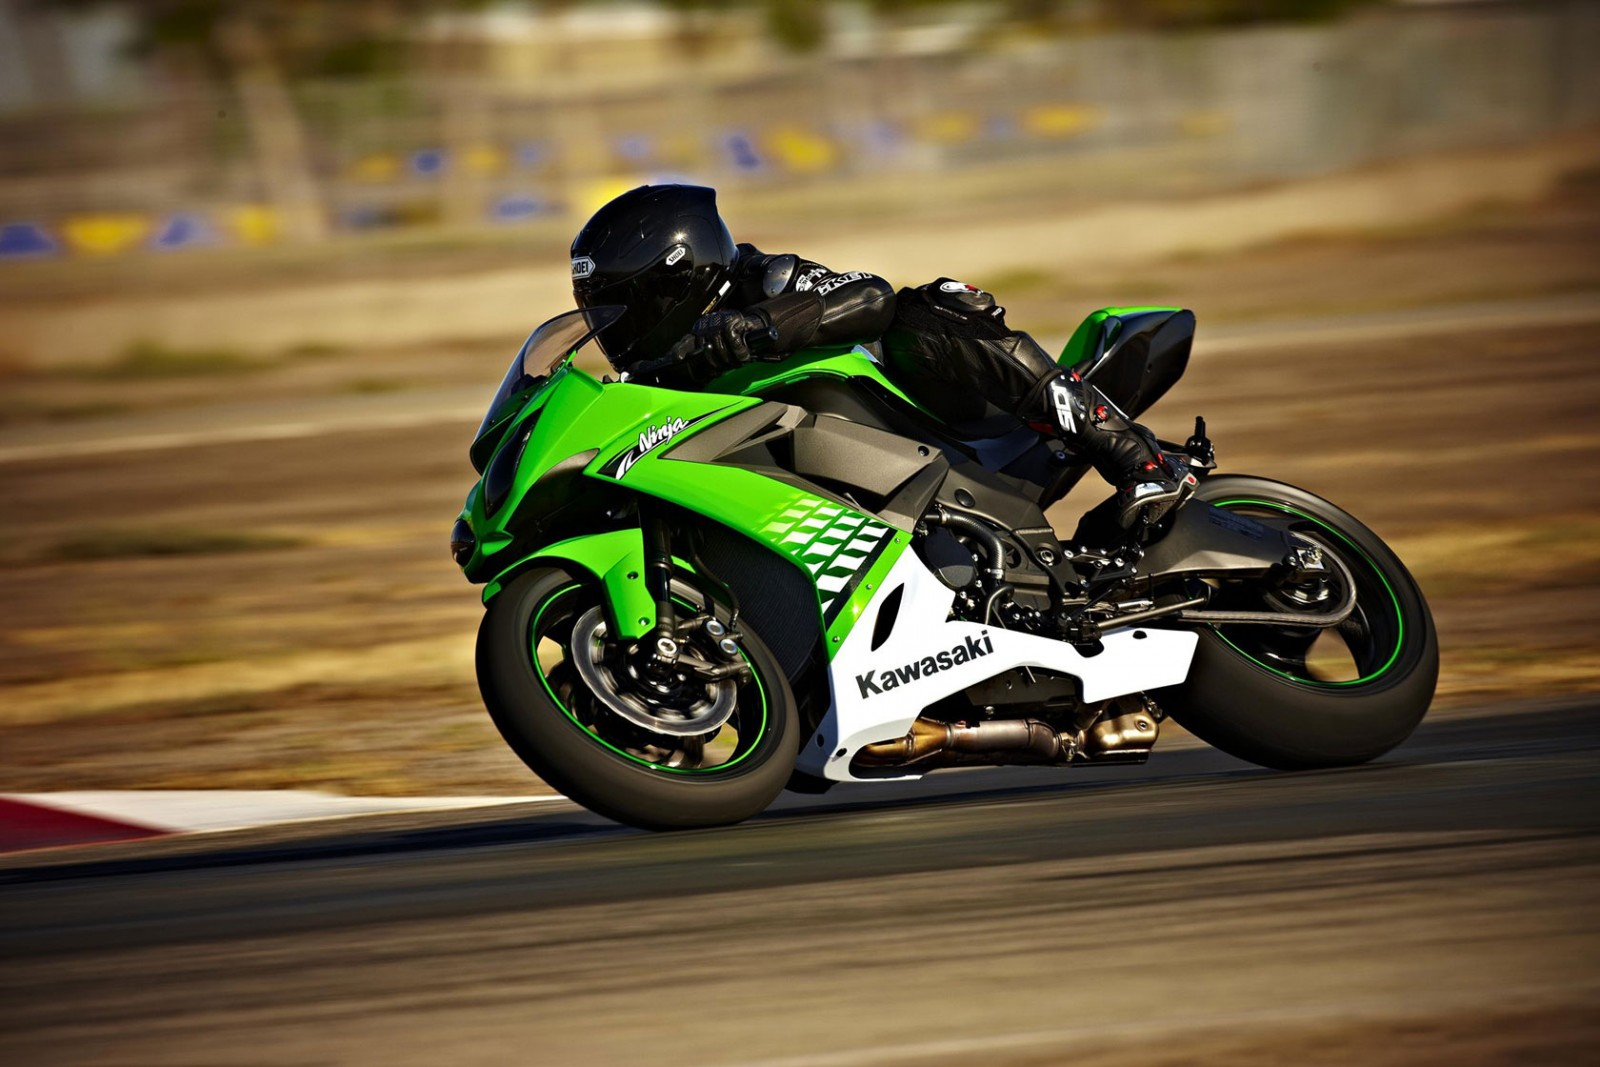 Stunt Wallpaper Hd Kawasaki Zx 10r 1000 2008 2010